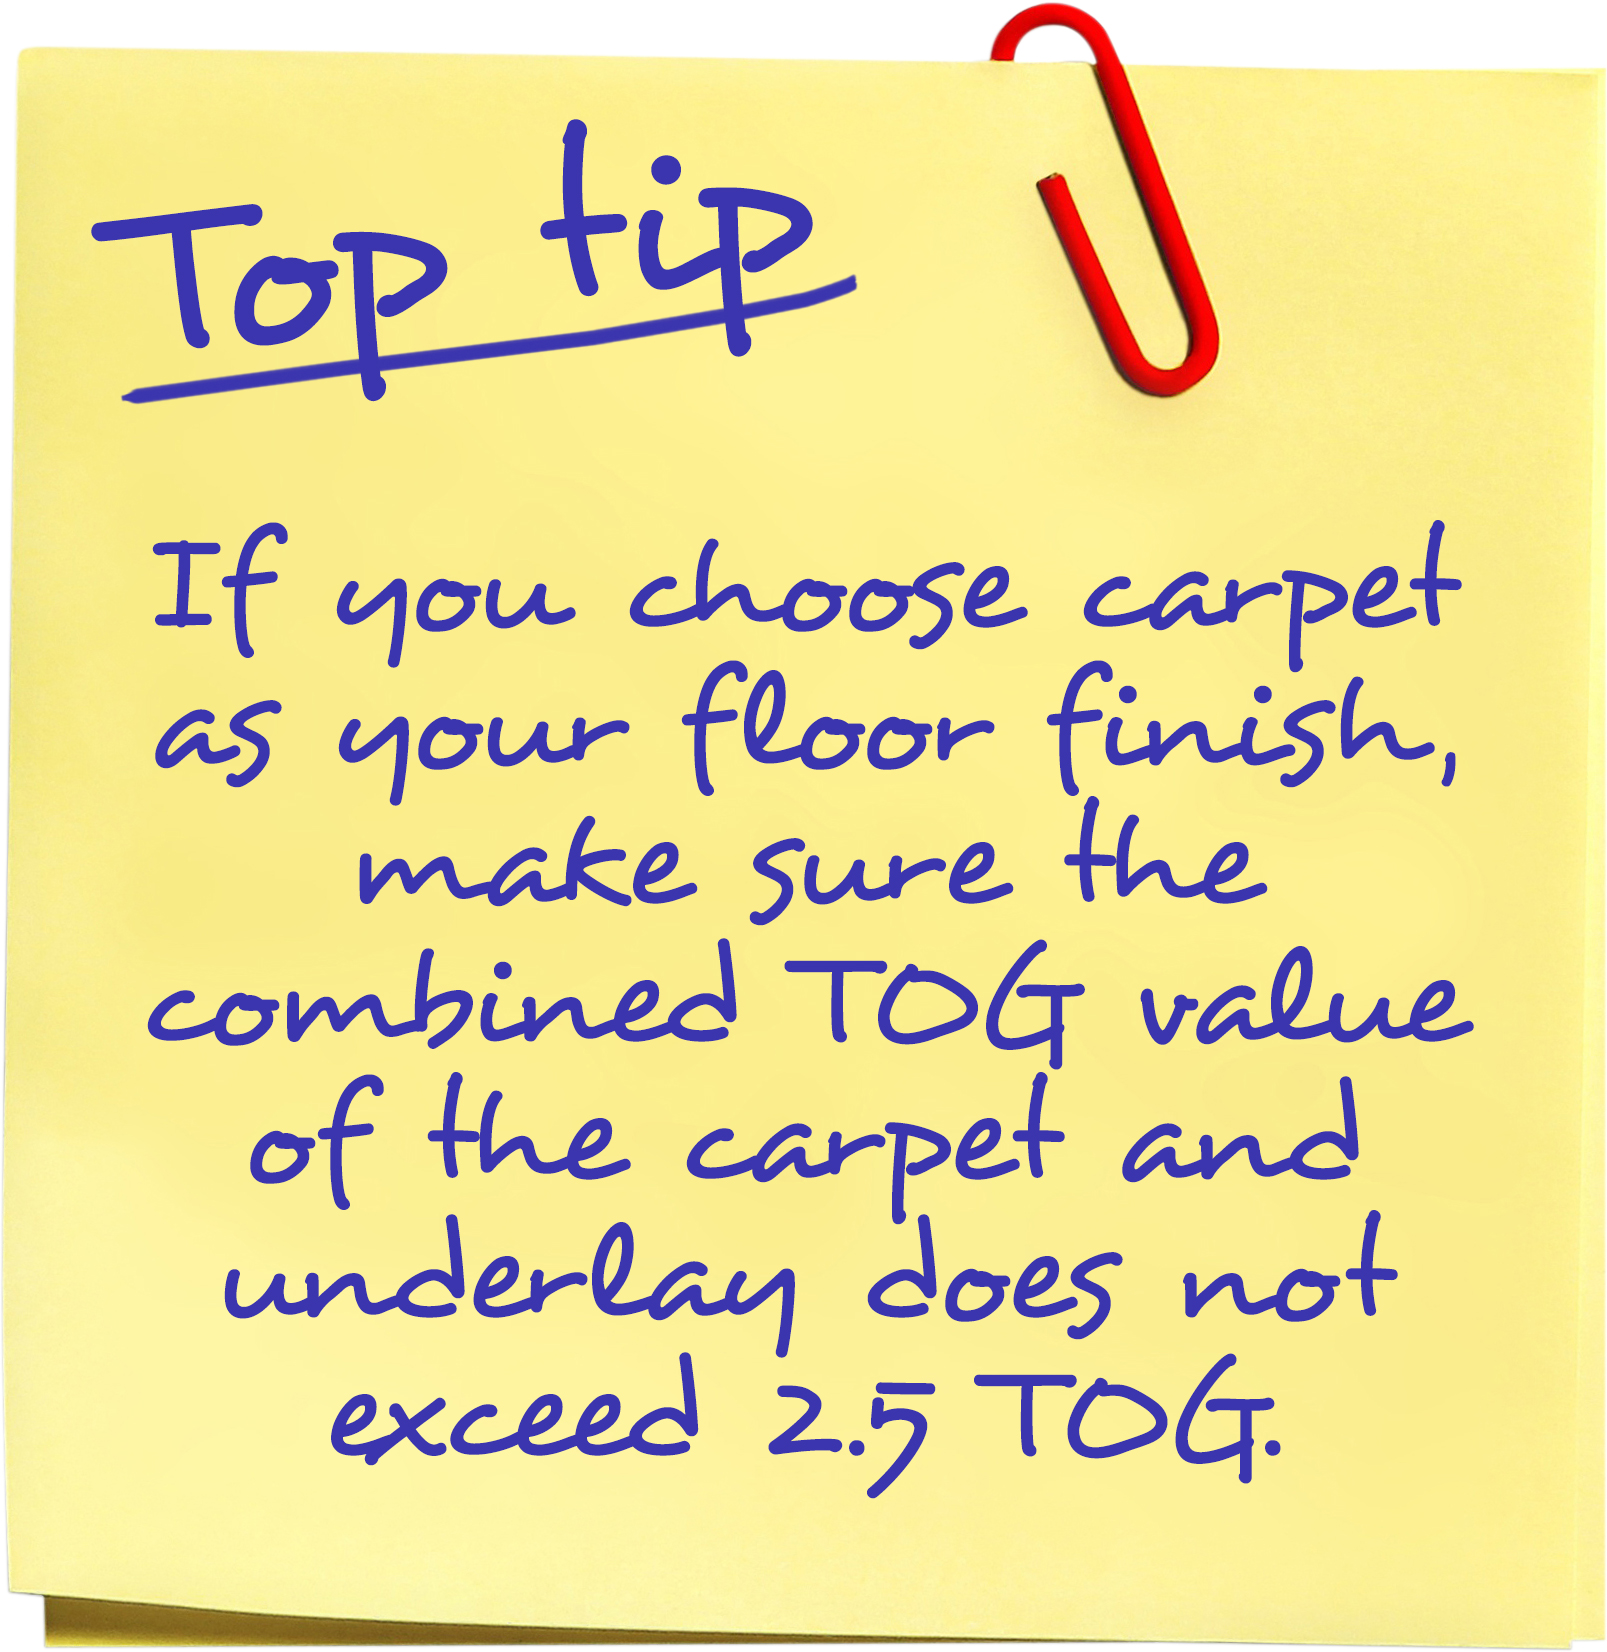 If you choose carpet as your floor finish, make sure the combined TOG value of the carpet and underlay does not exceed 2.5 TOG.